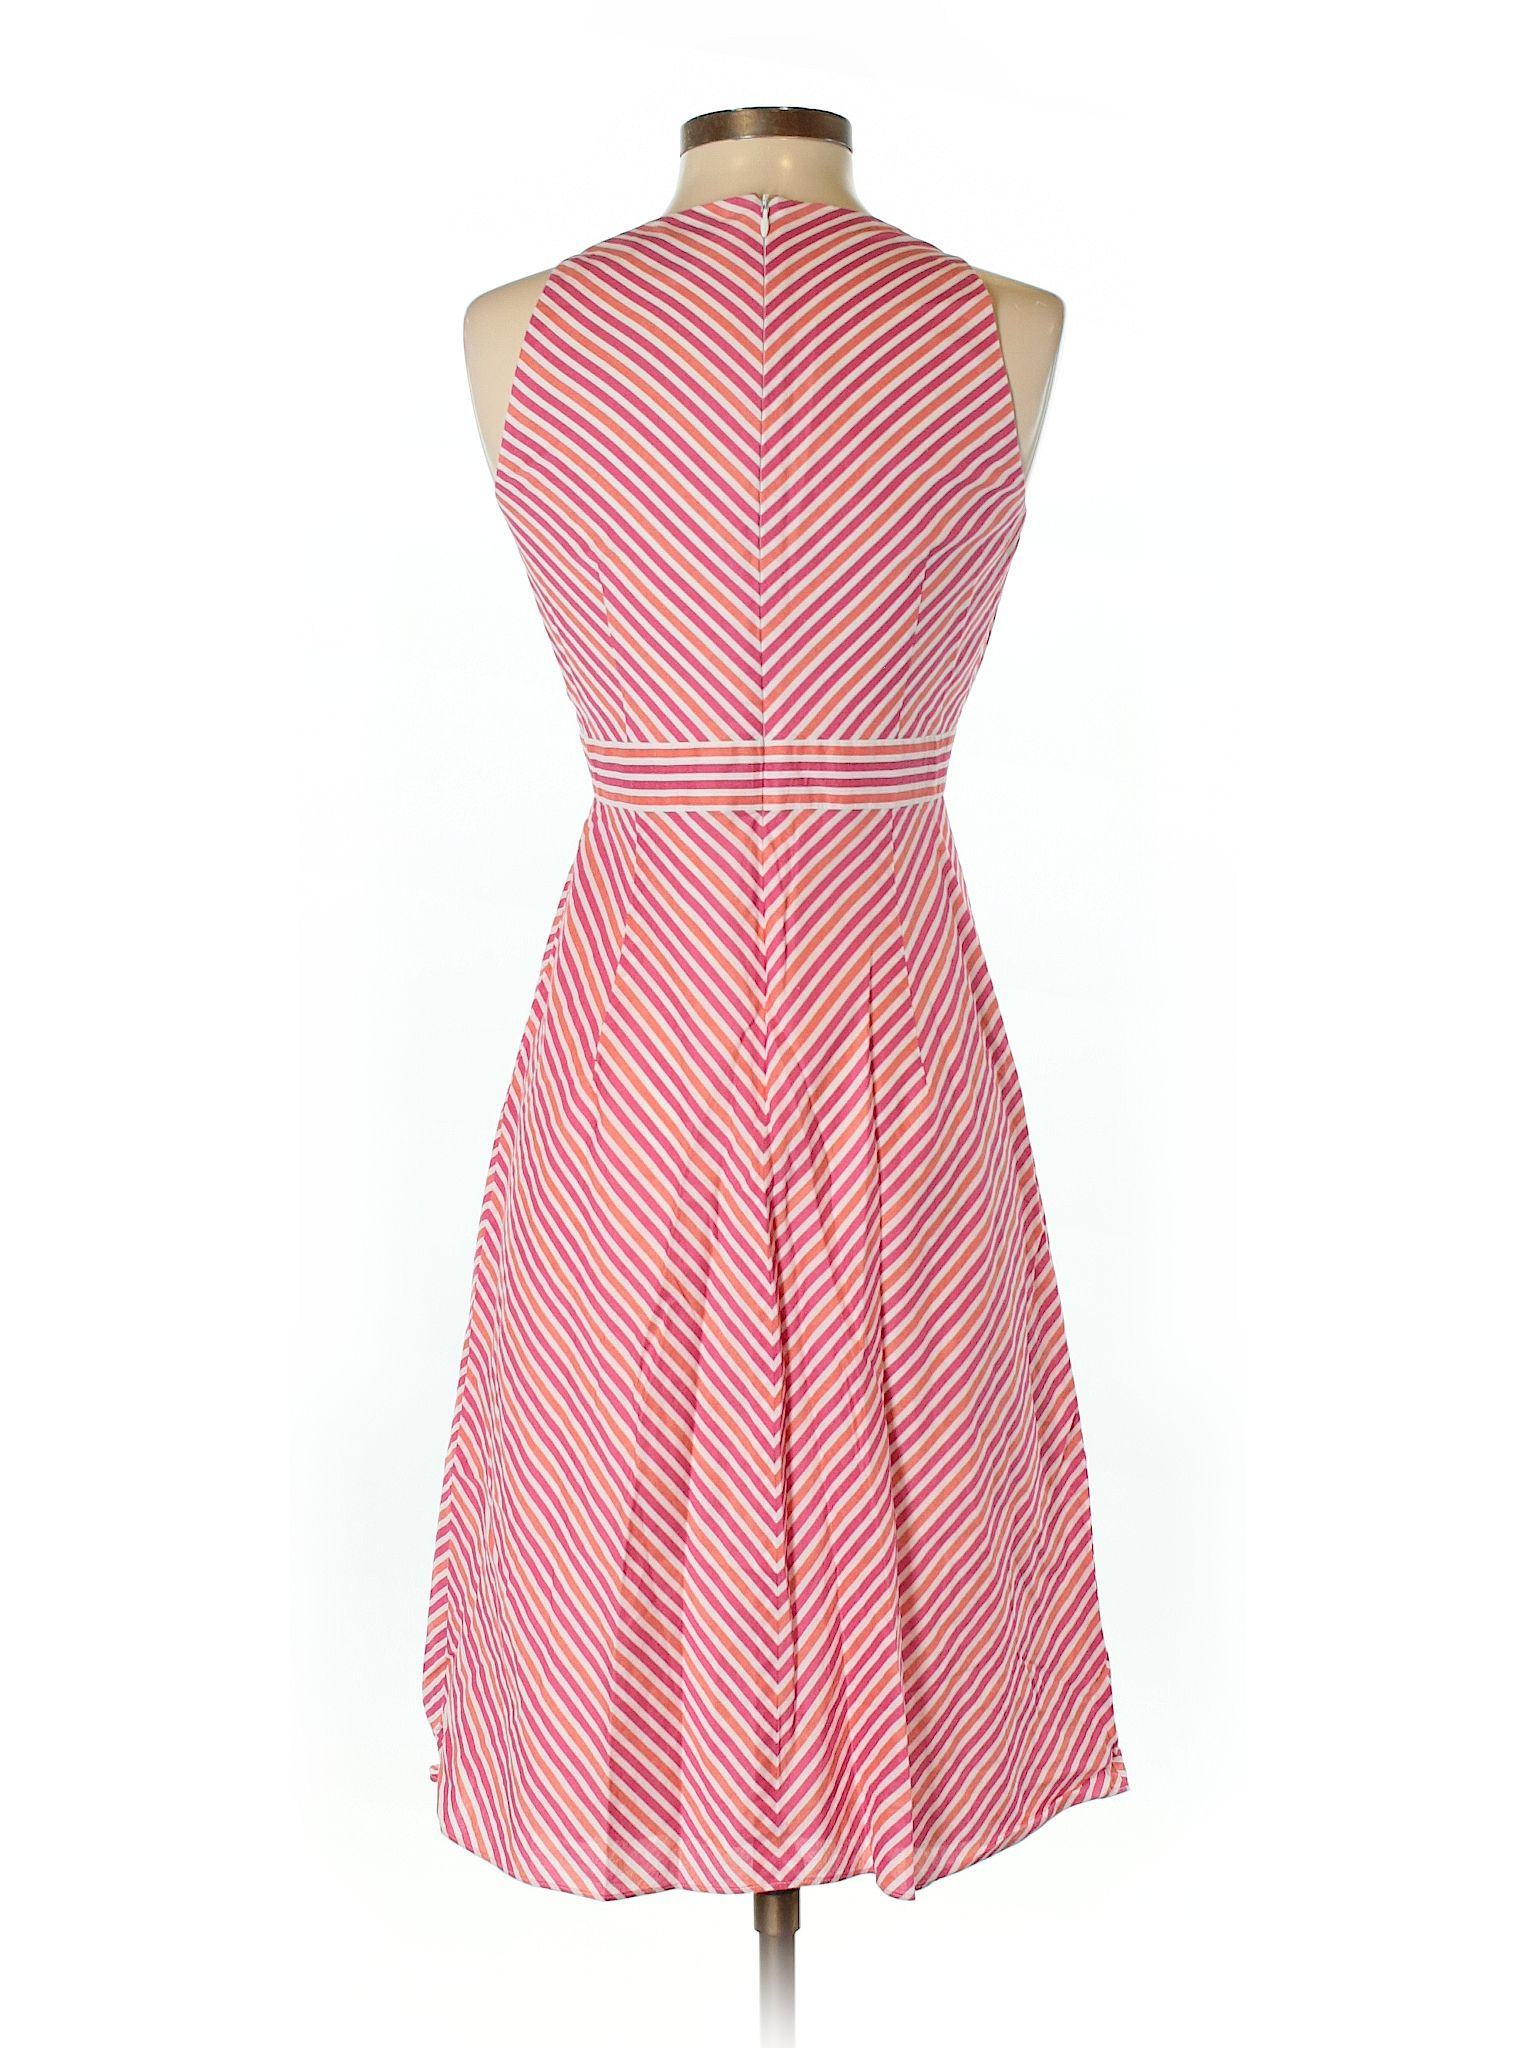 Ann Taylor Casual Dress: Size 2.00 Pink Women\'s Dresses - $14.99